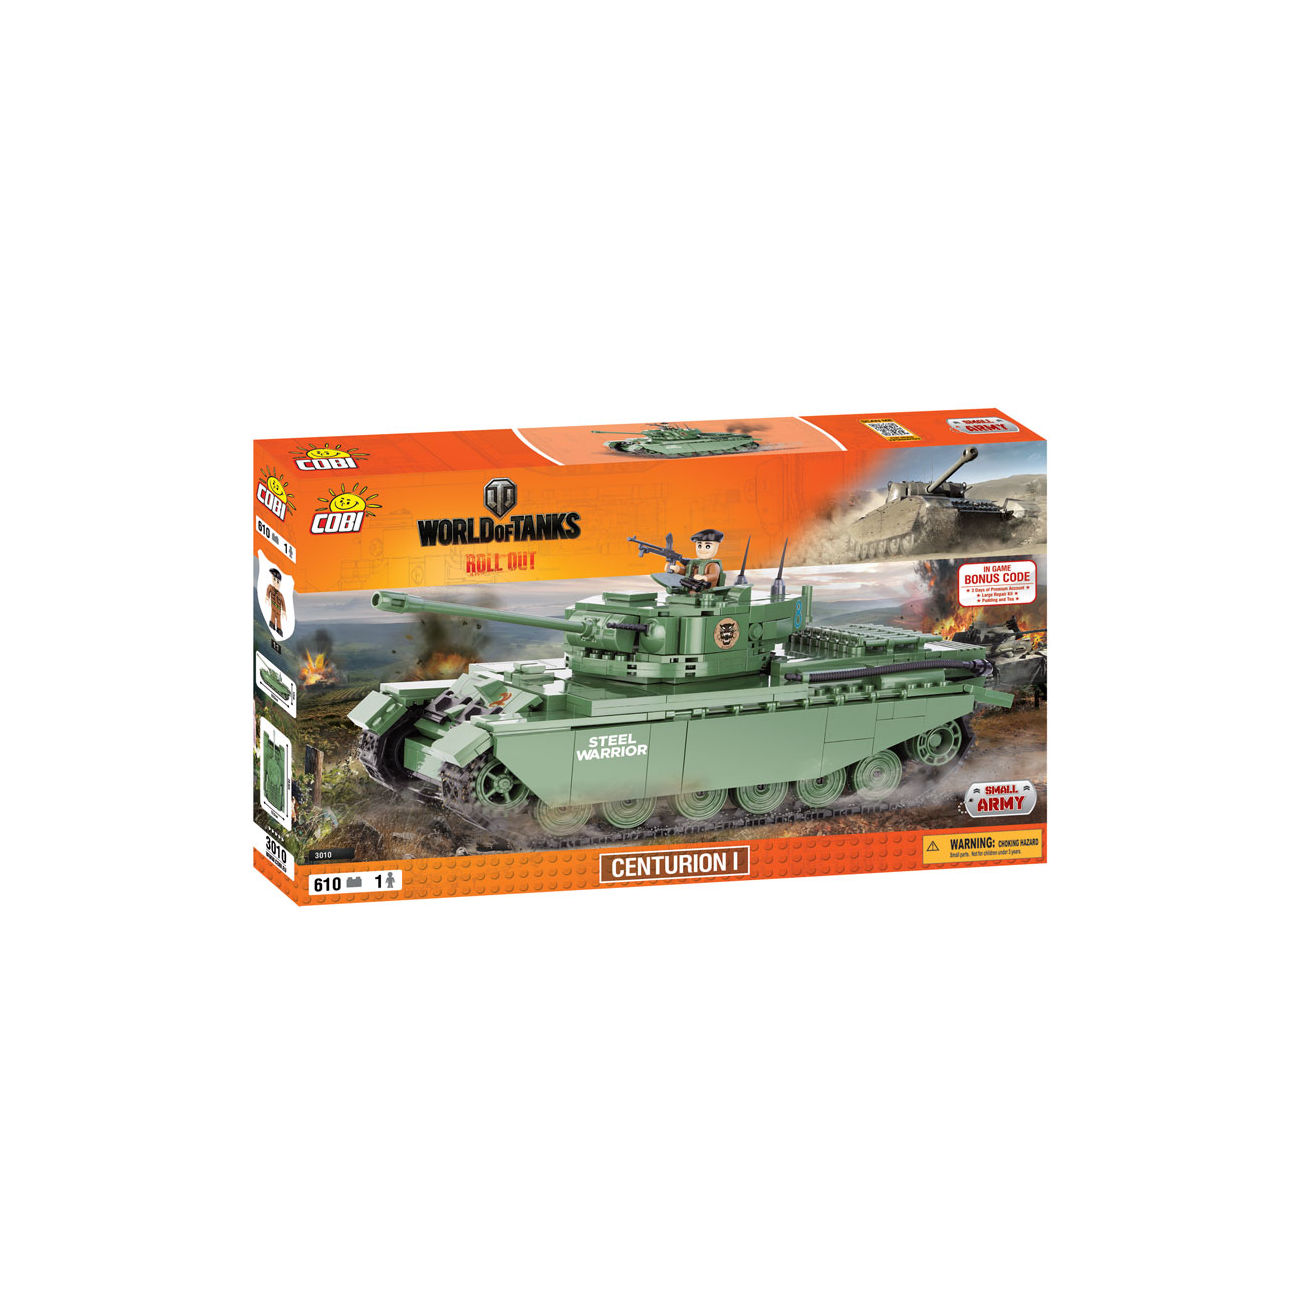 Cobi World Of Tanks Roll Out Small Army Bausatz Panzer Centurion I 610 Teile 3010 2